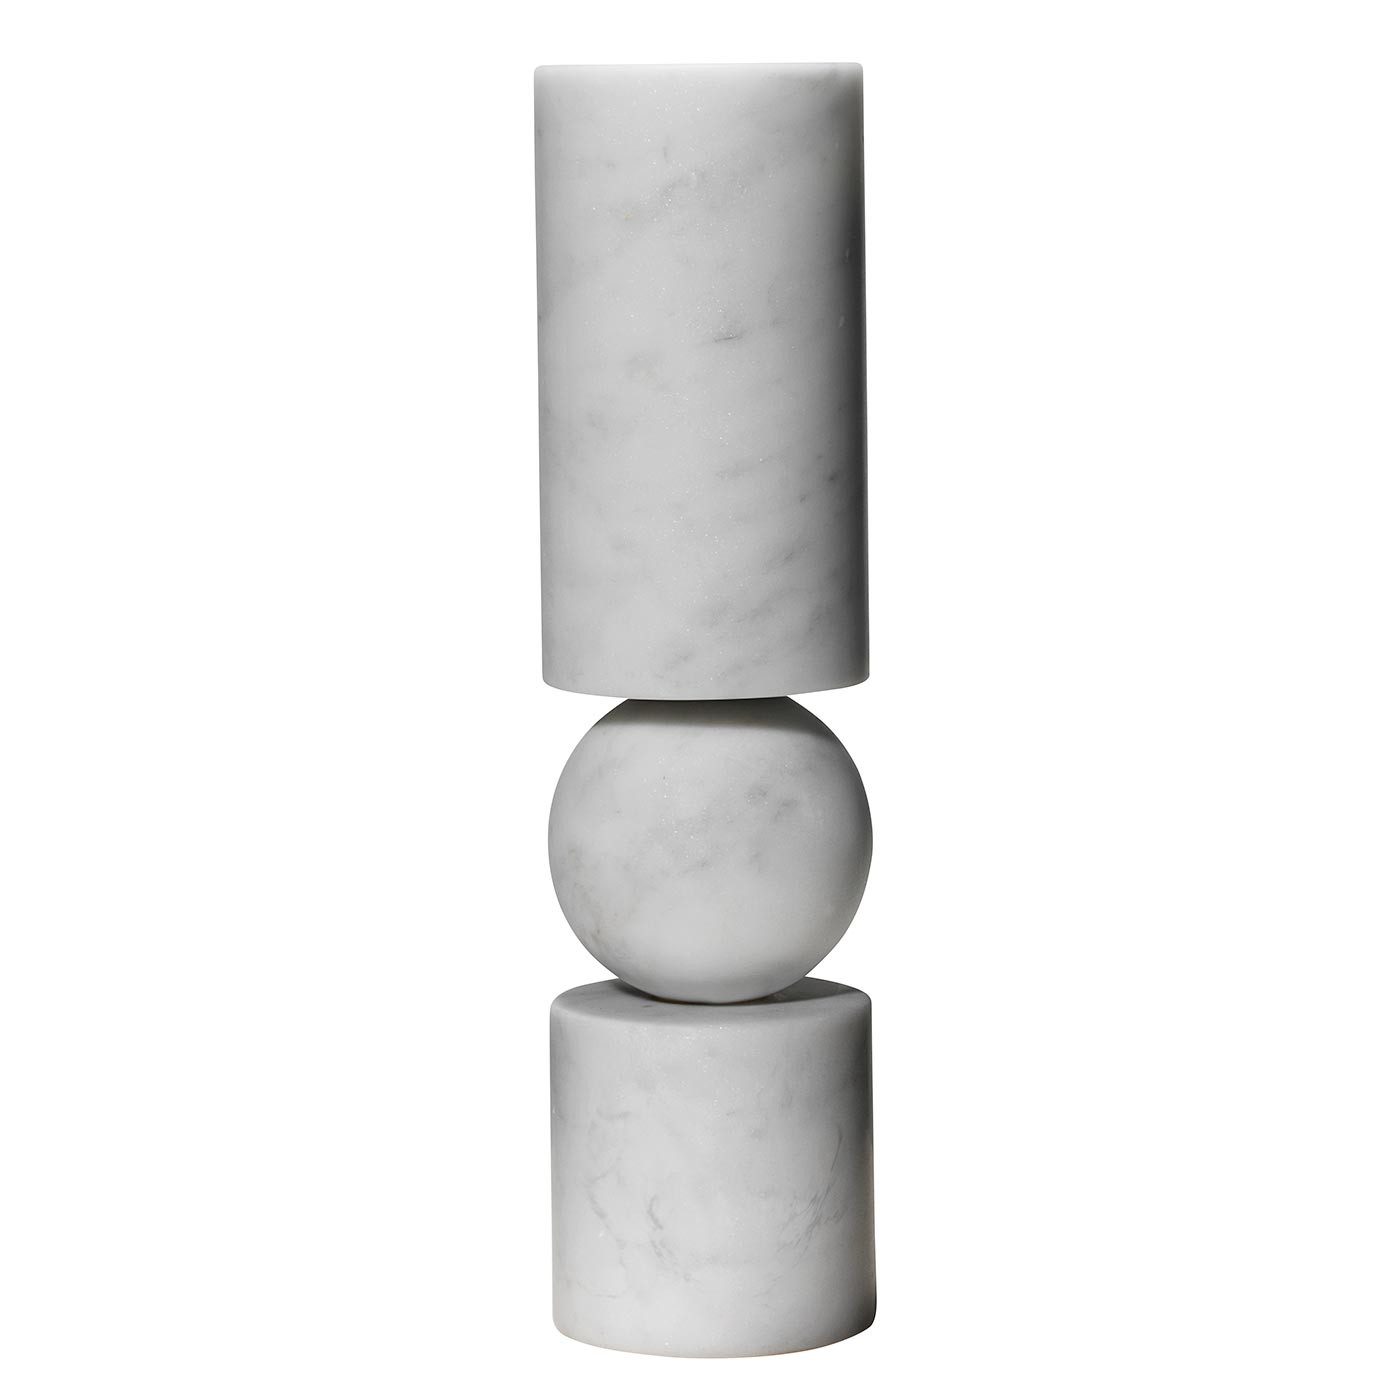 Lee Broom Fulcrum Small Marble Kerzenhalter